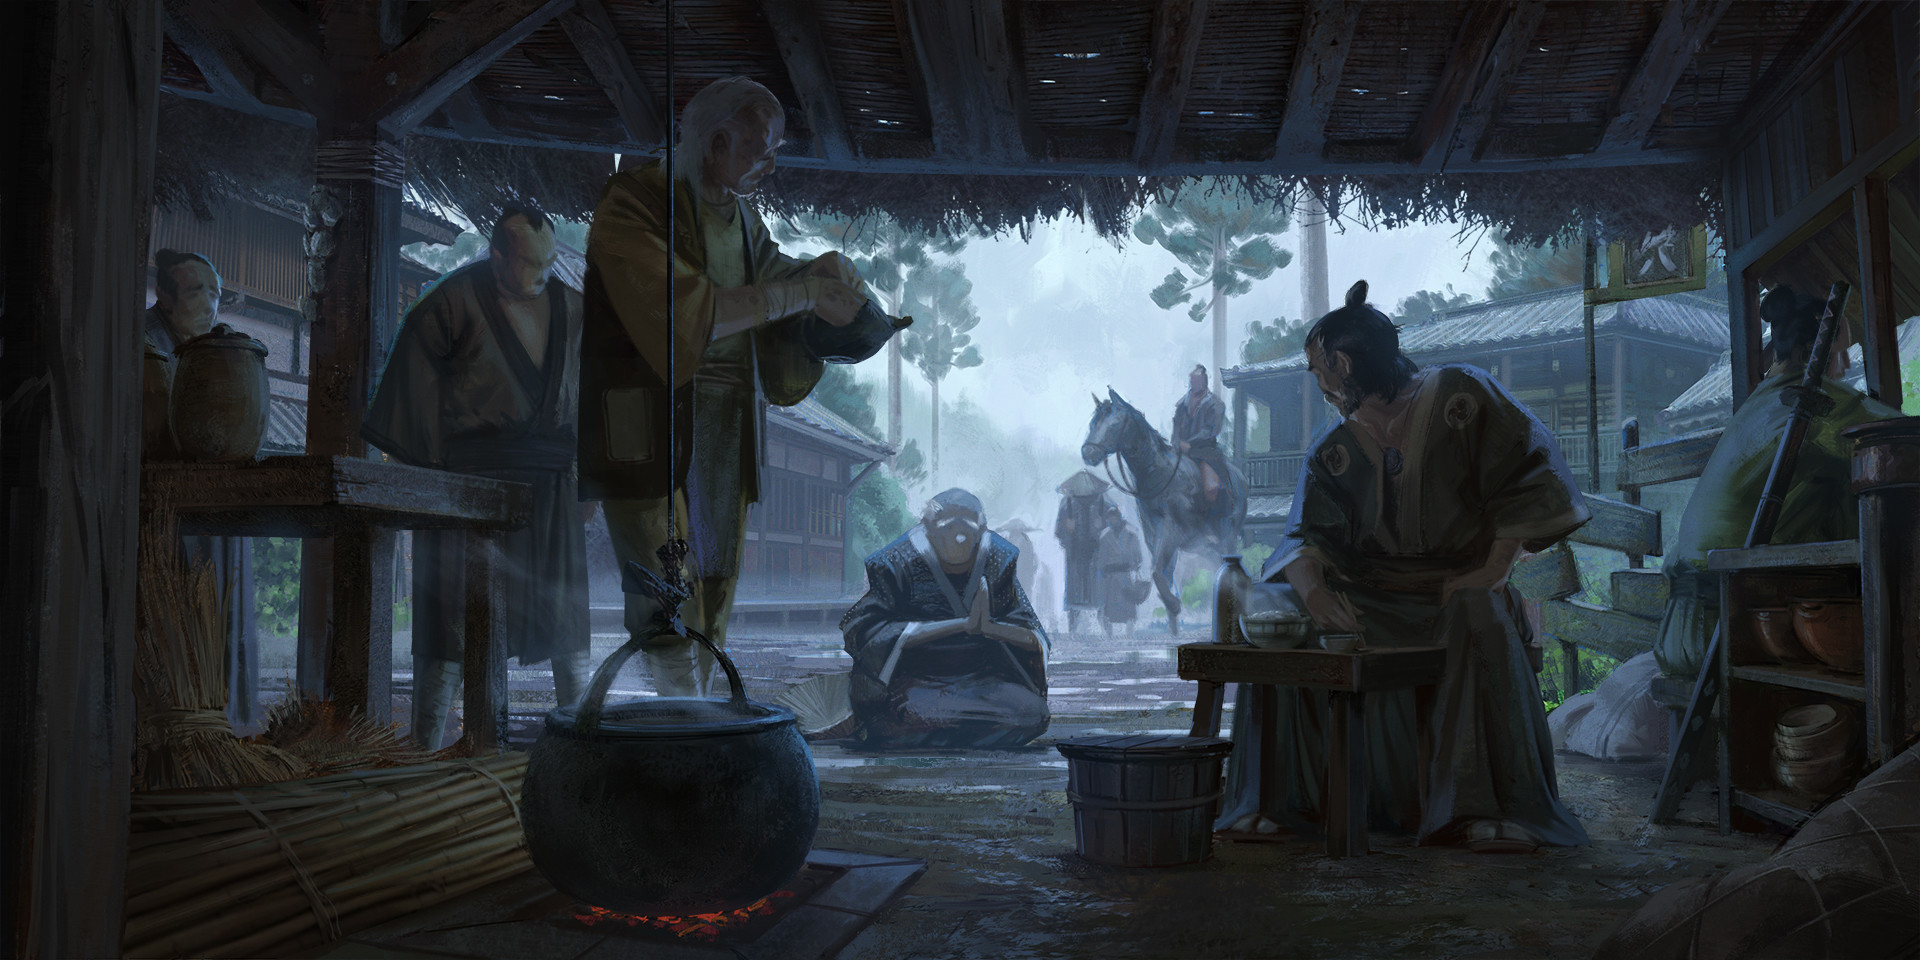 Klaus pillon theshogunate keyframe001 final